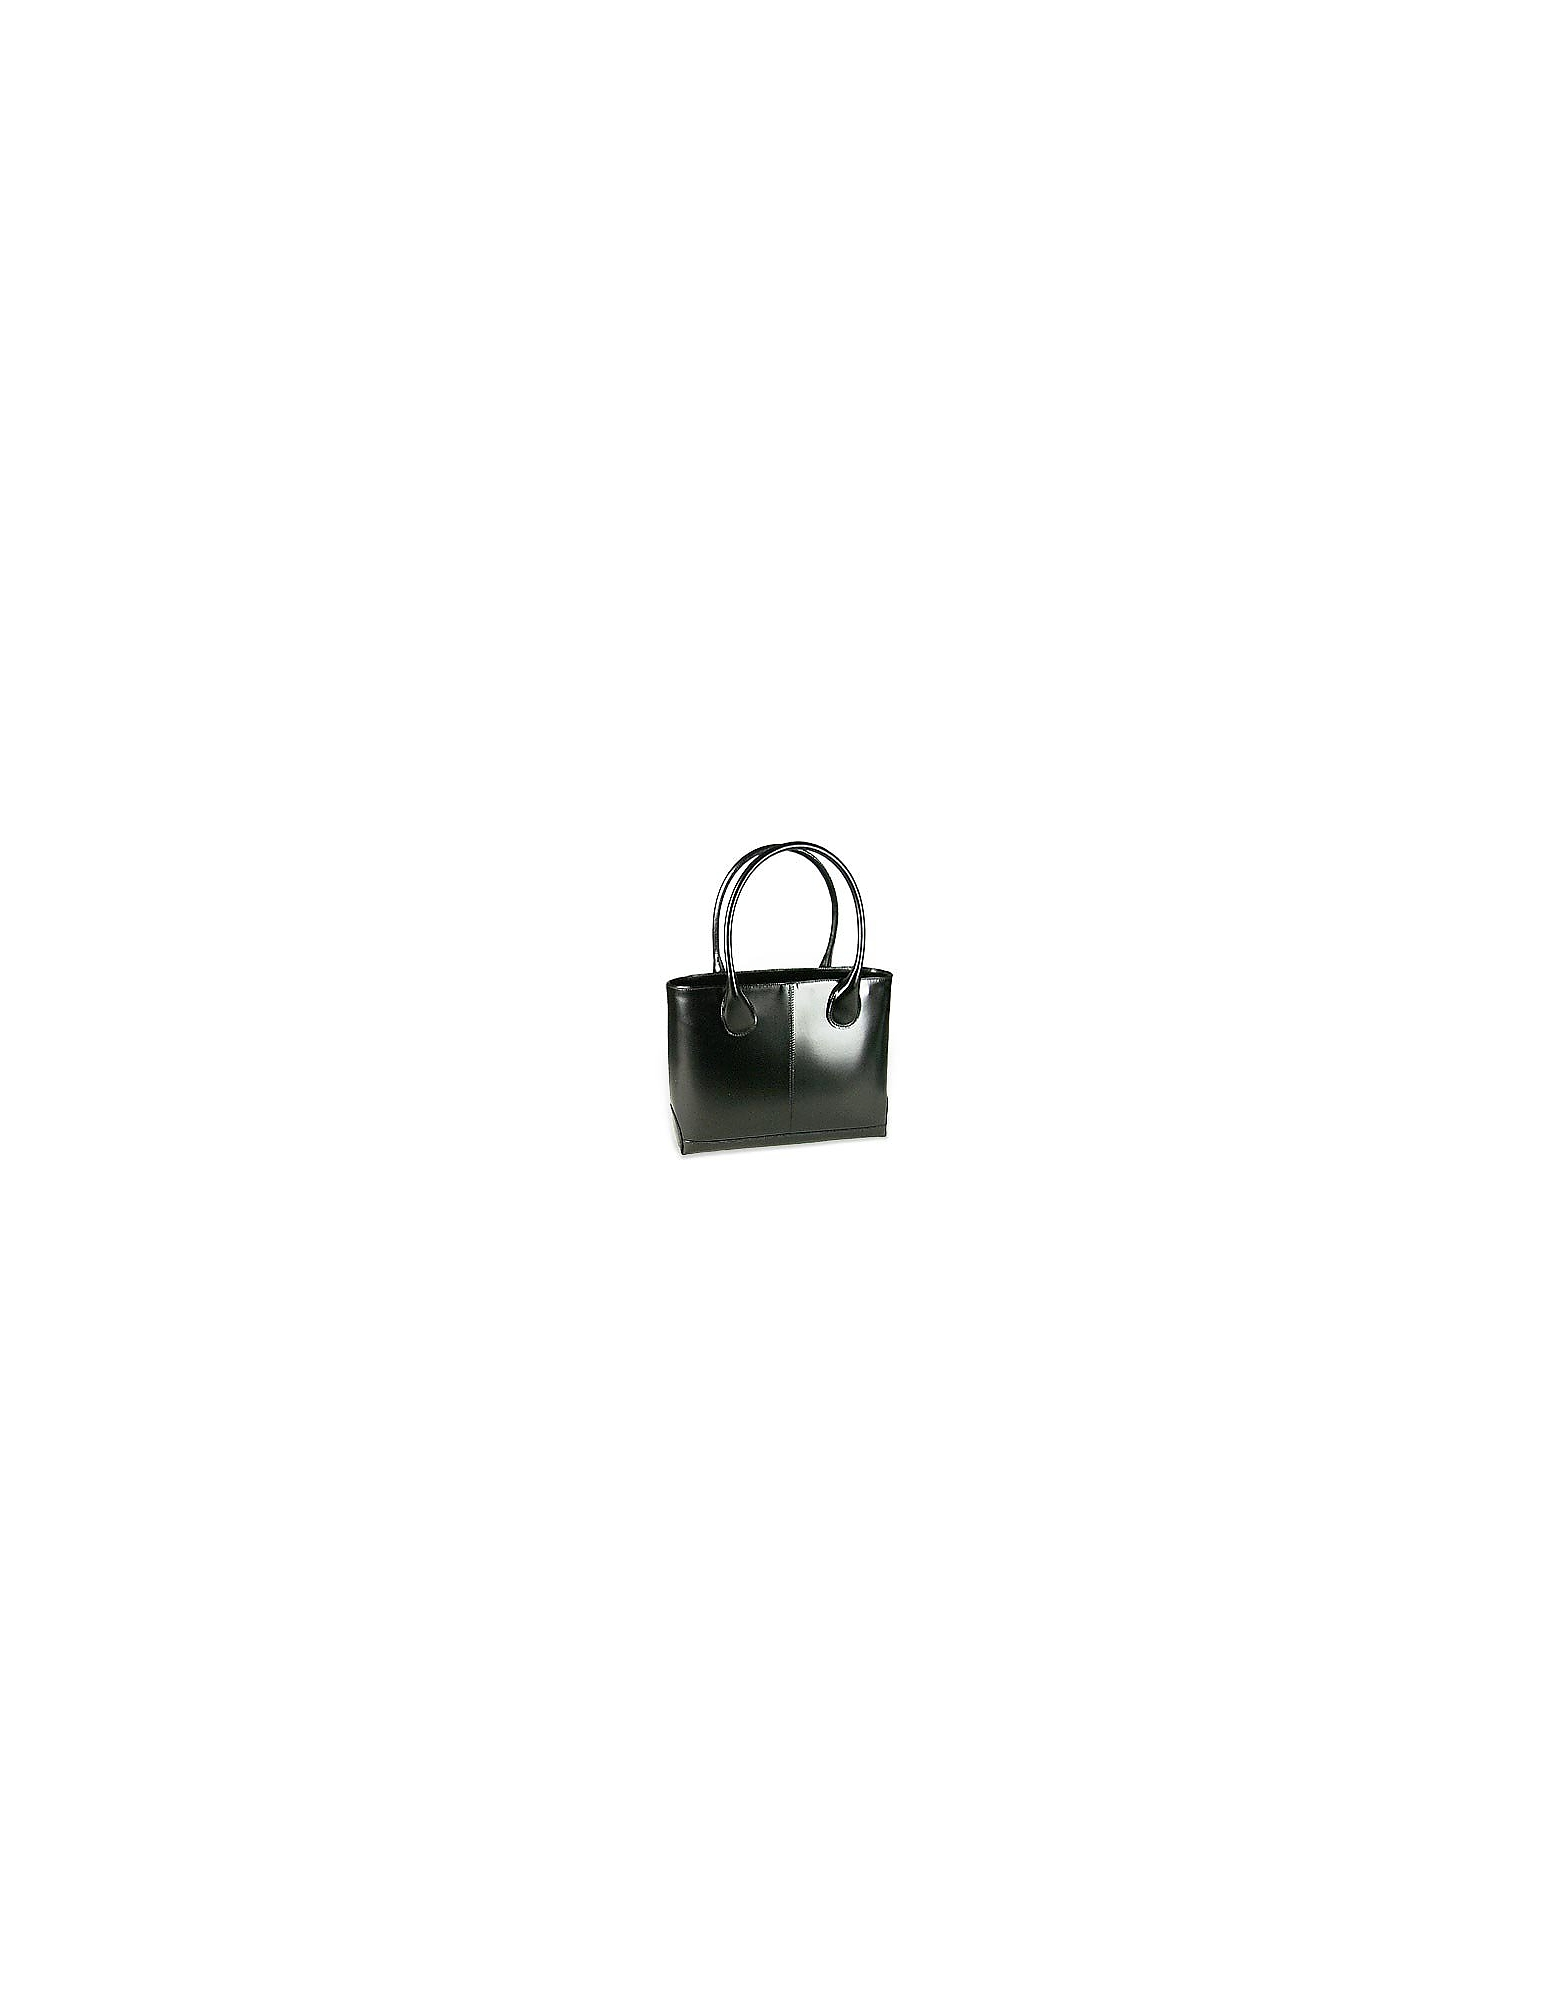 Fontanelli Handbags, Polished Italian Leather Tote Bag